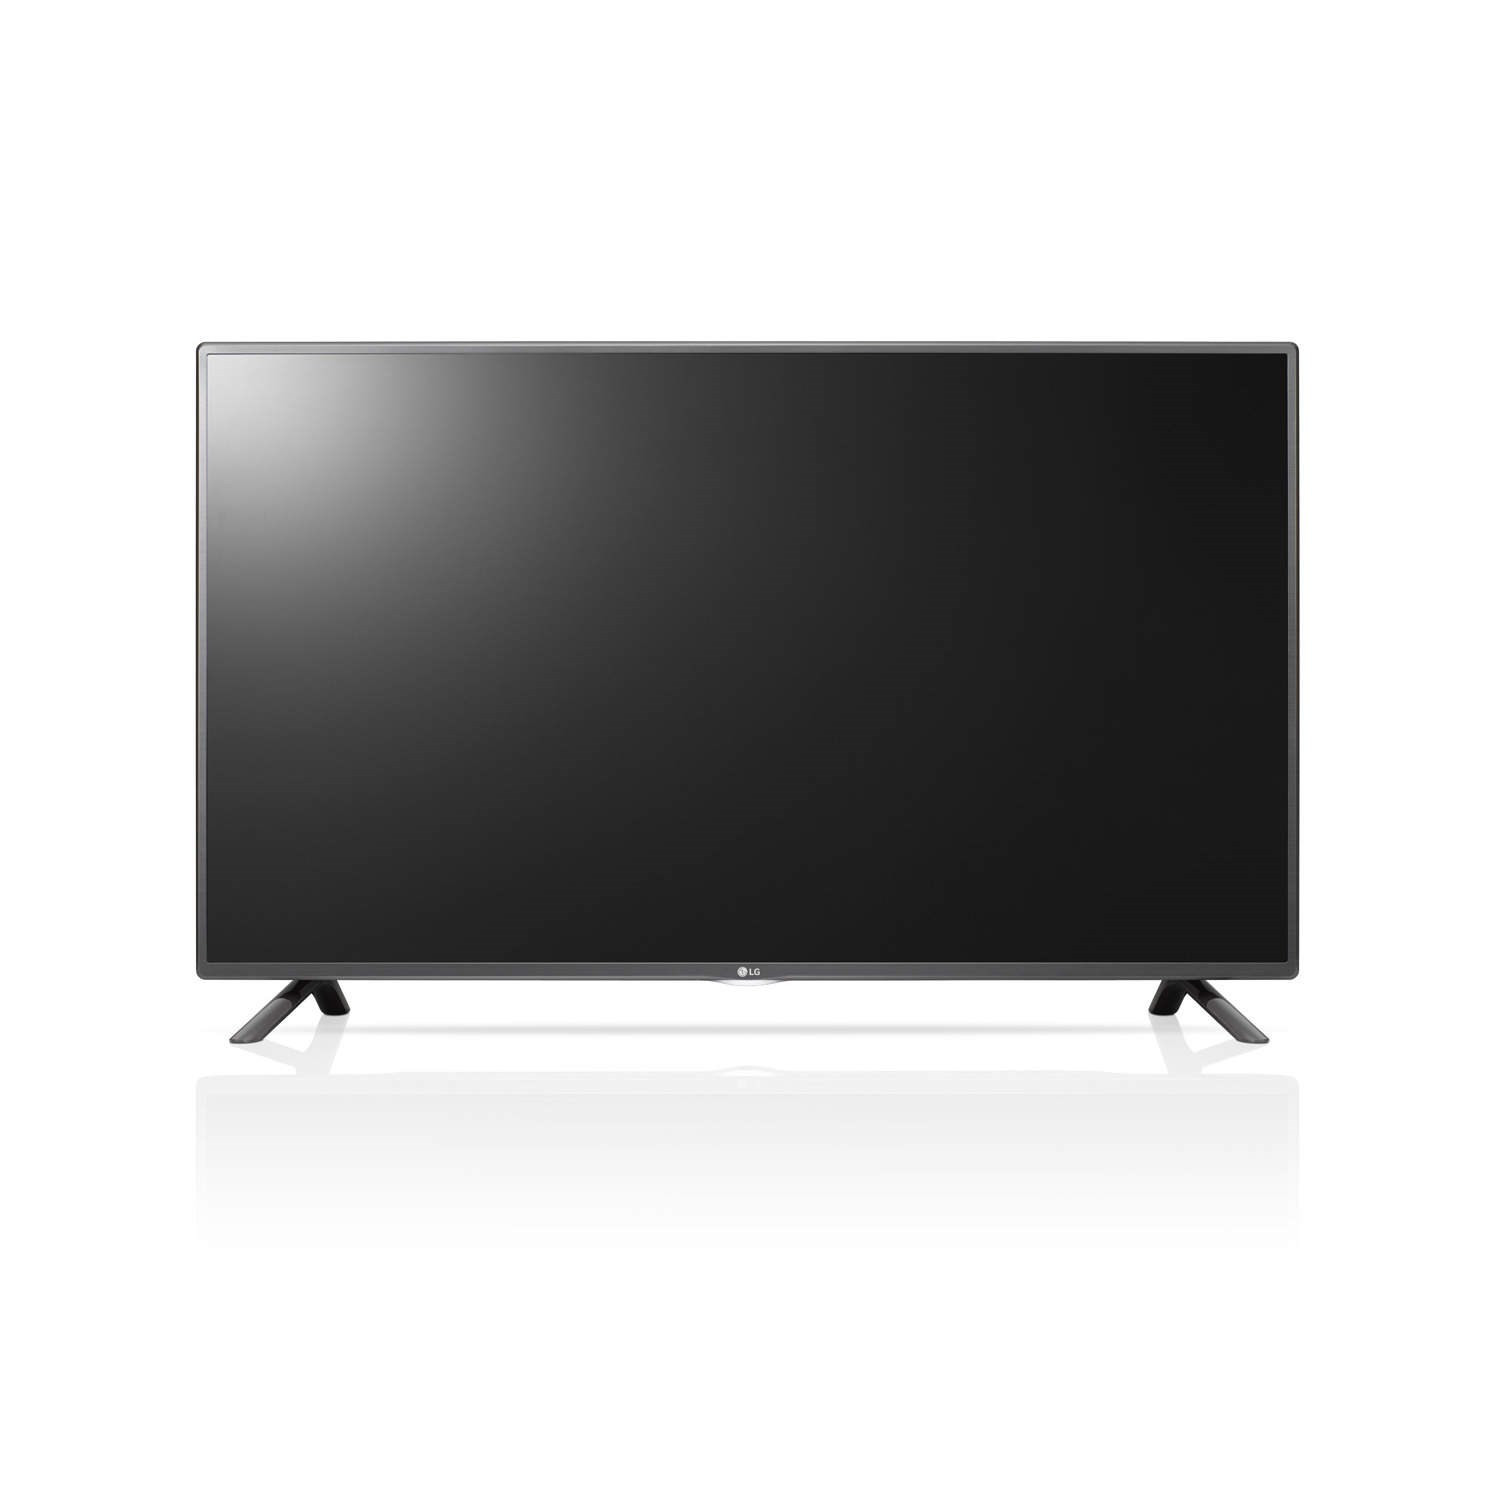 Lg 32 Smart Tv Magnífica Lg 32lb580v 32 Inch Smart Led Tv Of 48  Arriba Lg 32 Smart Tv